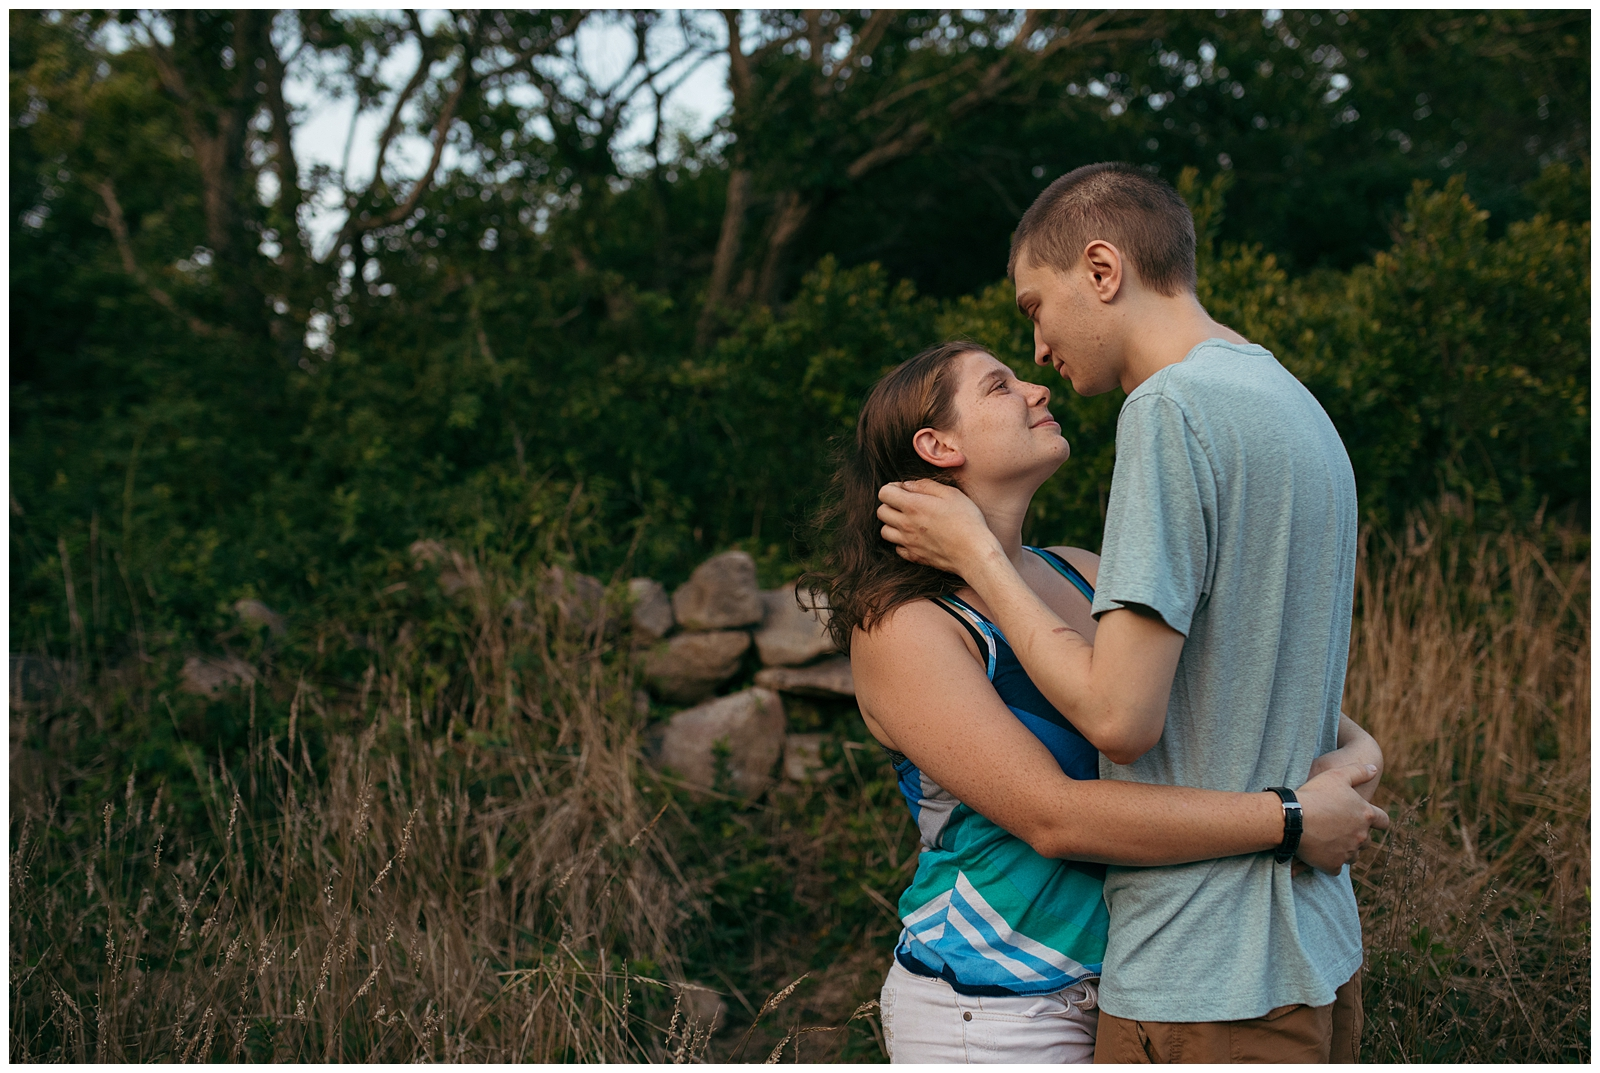 Block-Island-Engagement-Session-Bailey-Q-Photo-Boston-Wedding-Photographer-007.jpg